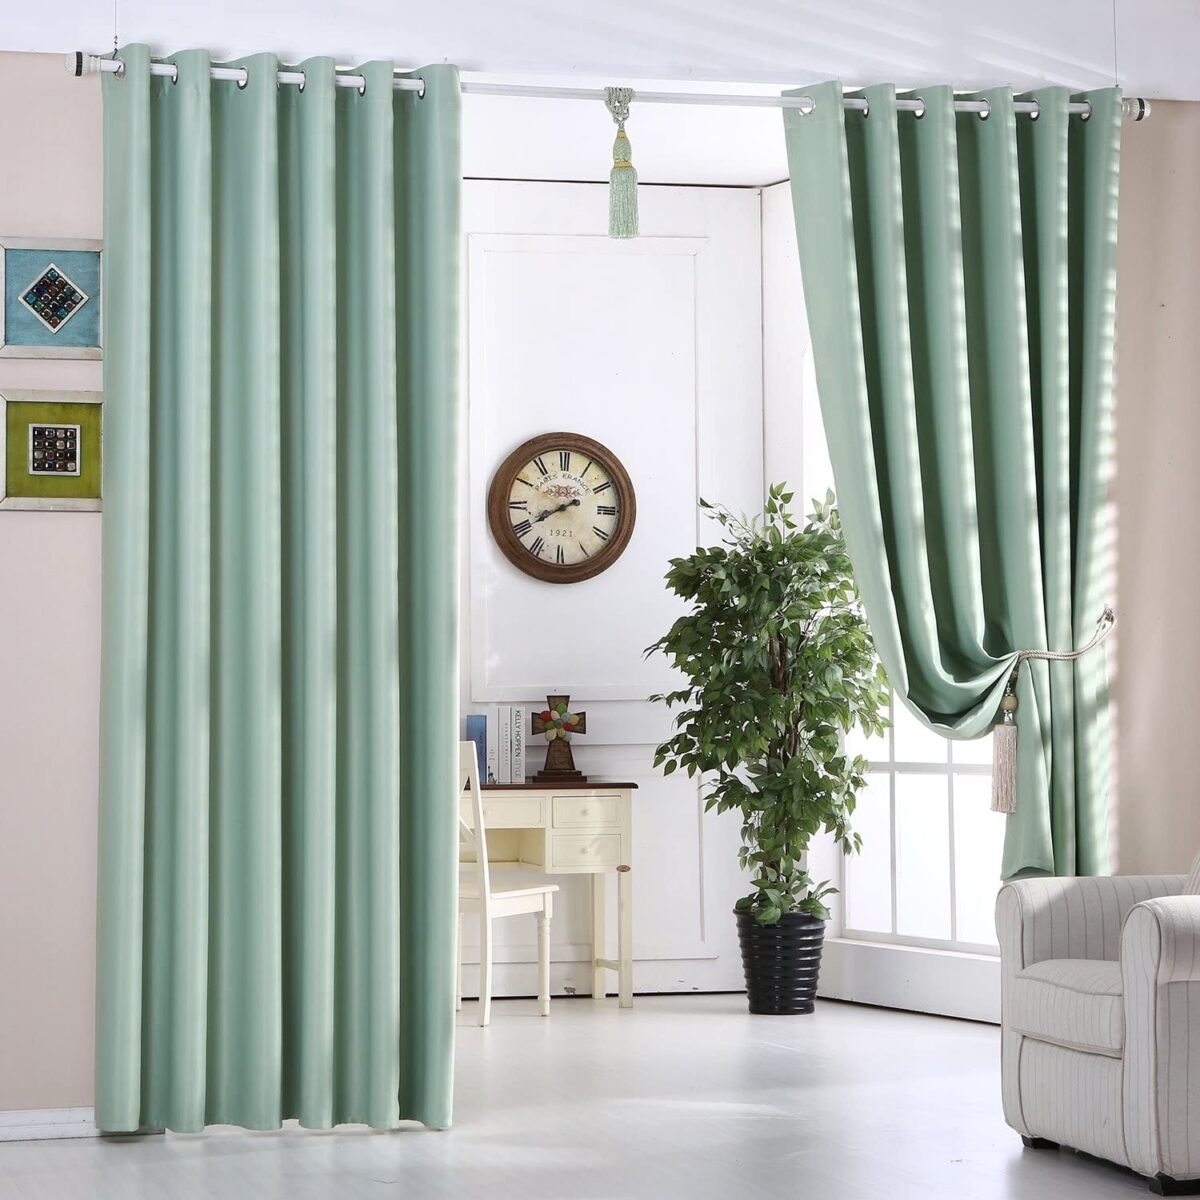 colors-curtains-trends-2021-green